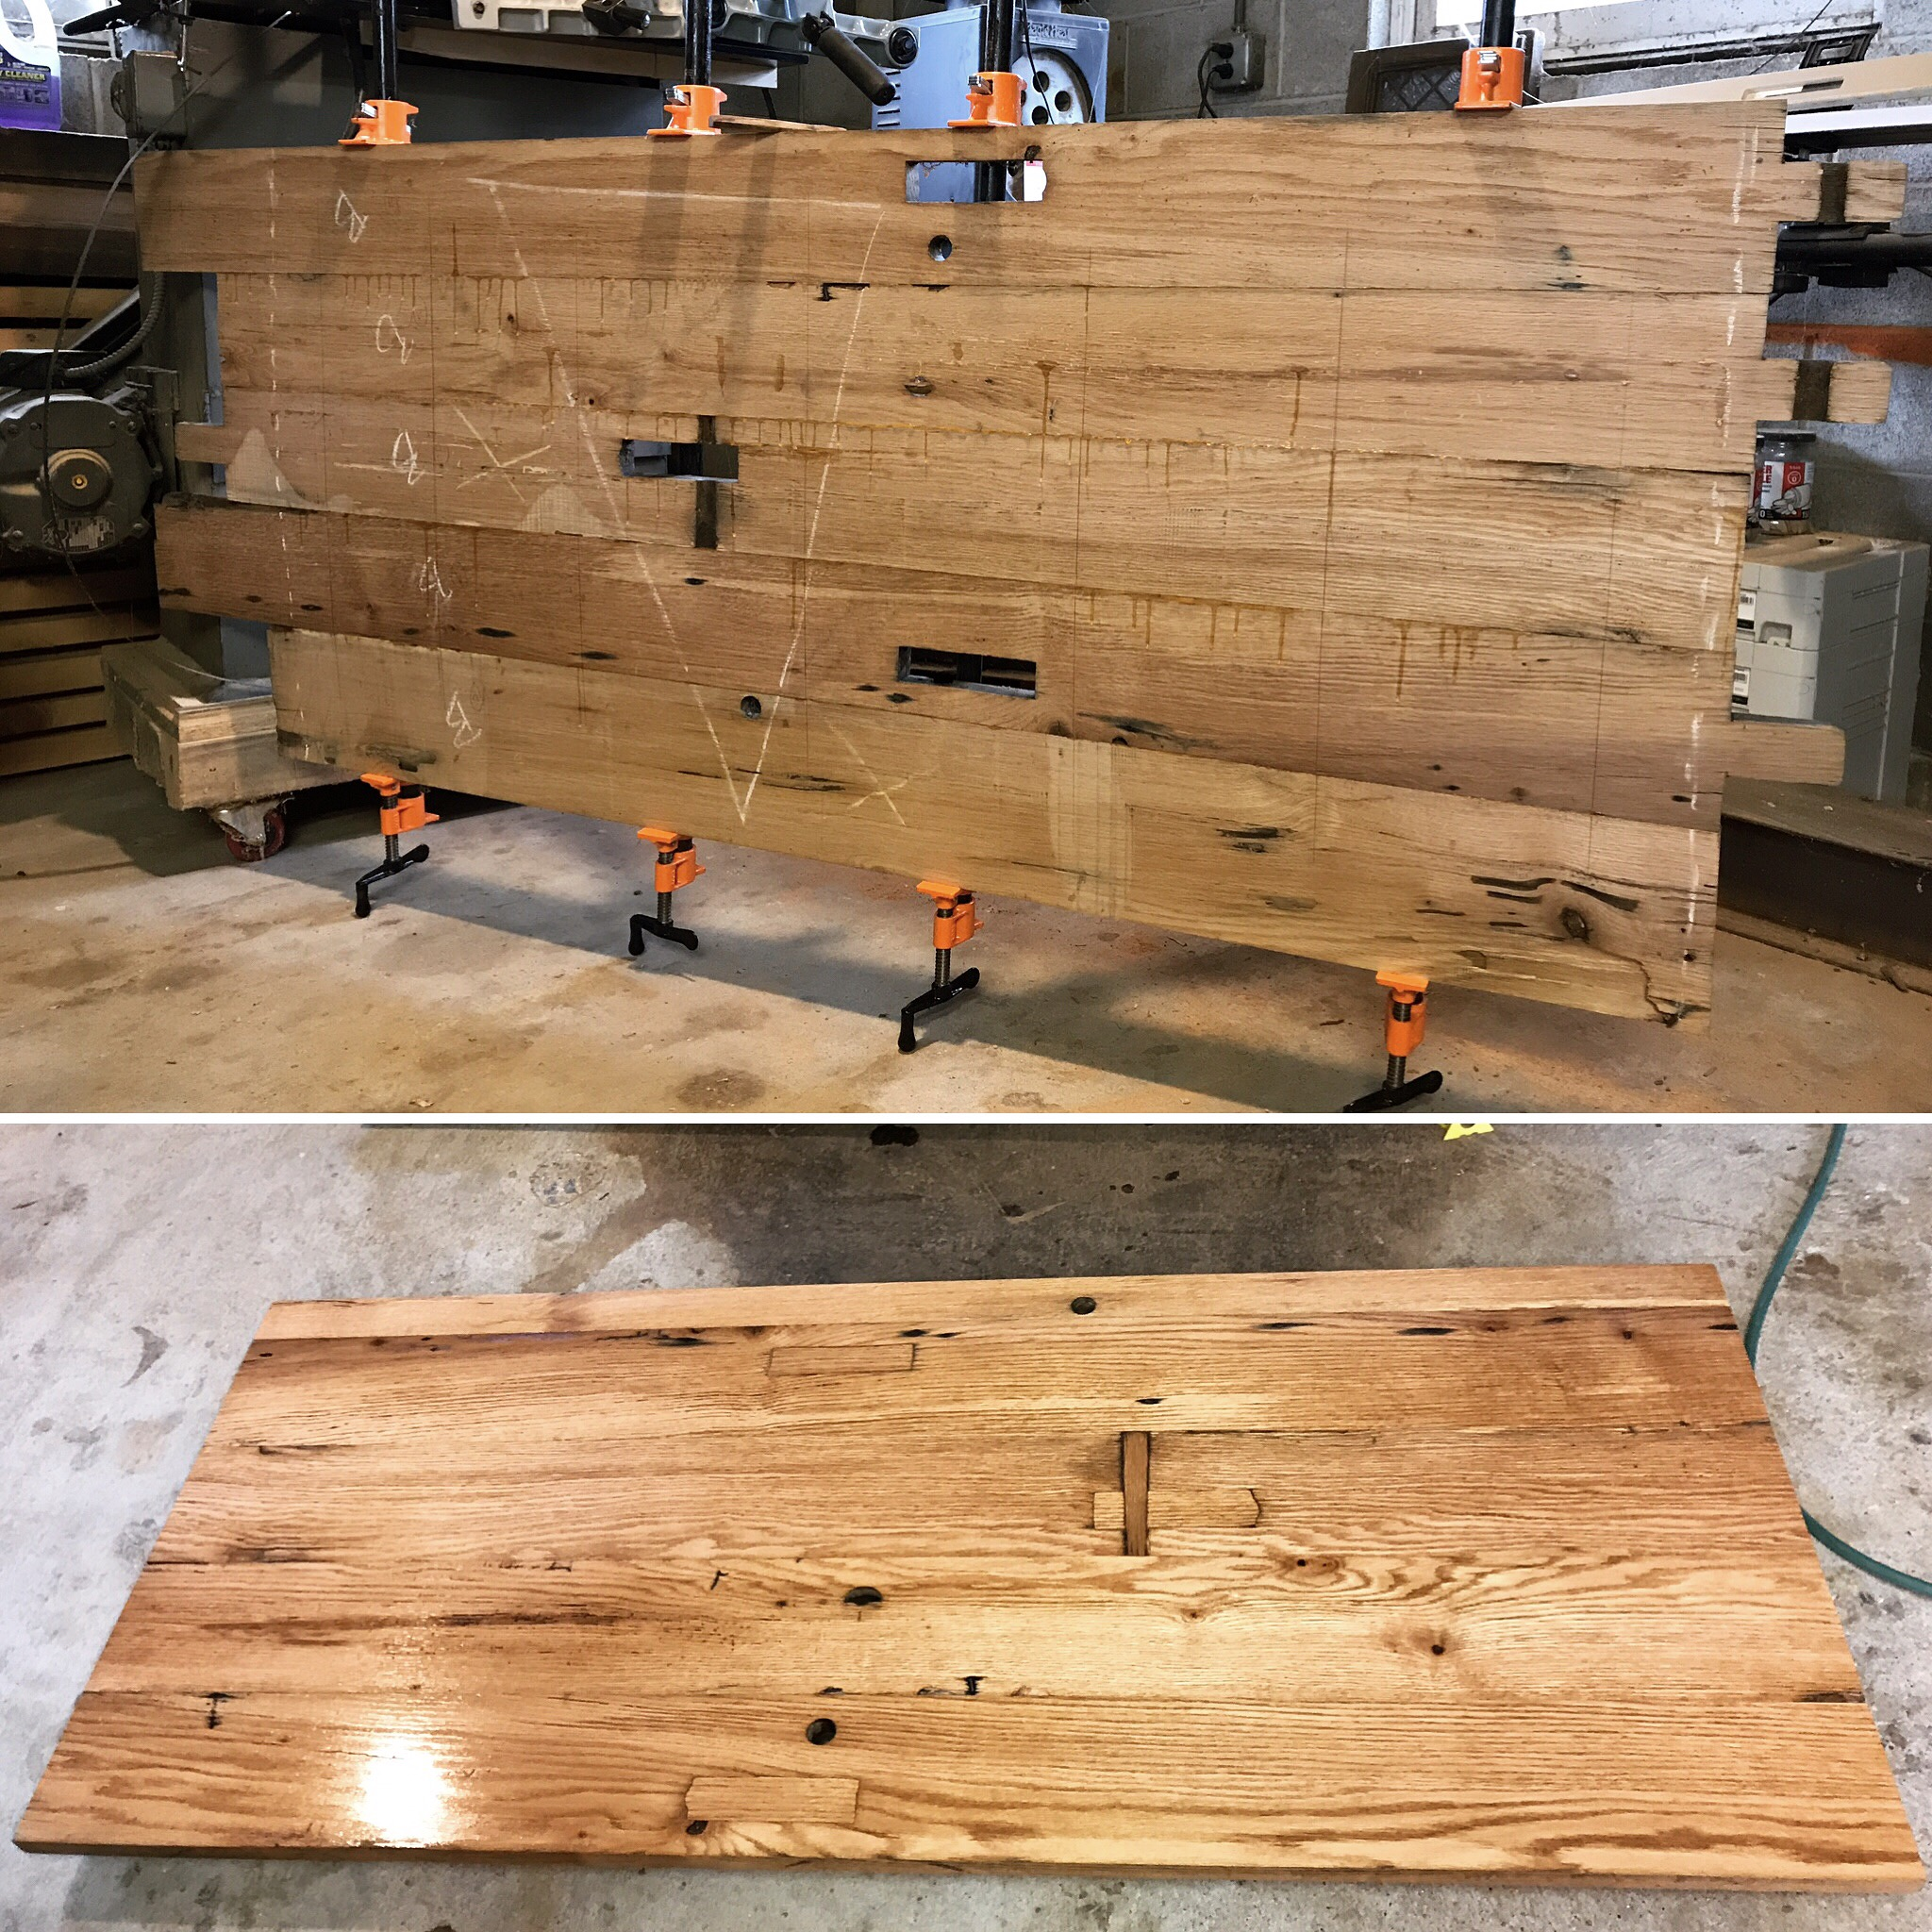 This is a before and after of one of the panels glued and clamped, and then after it was sanded and finished with varnish.